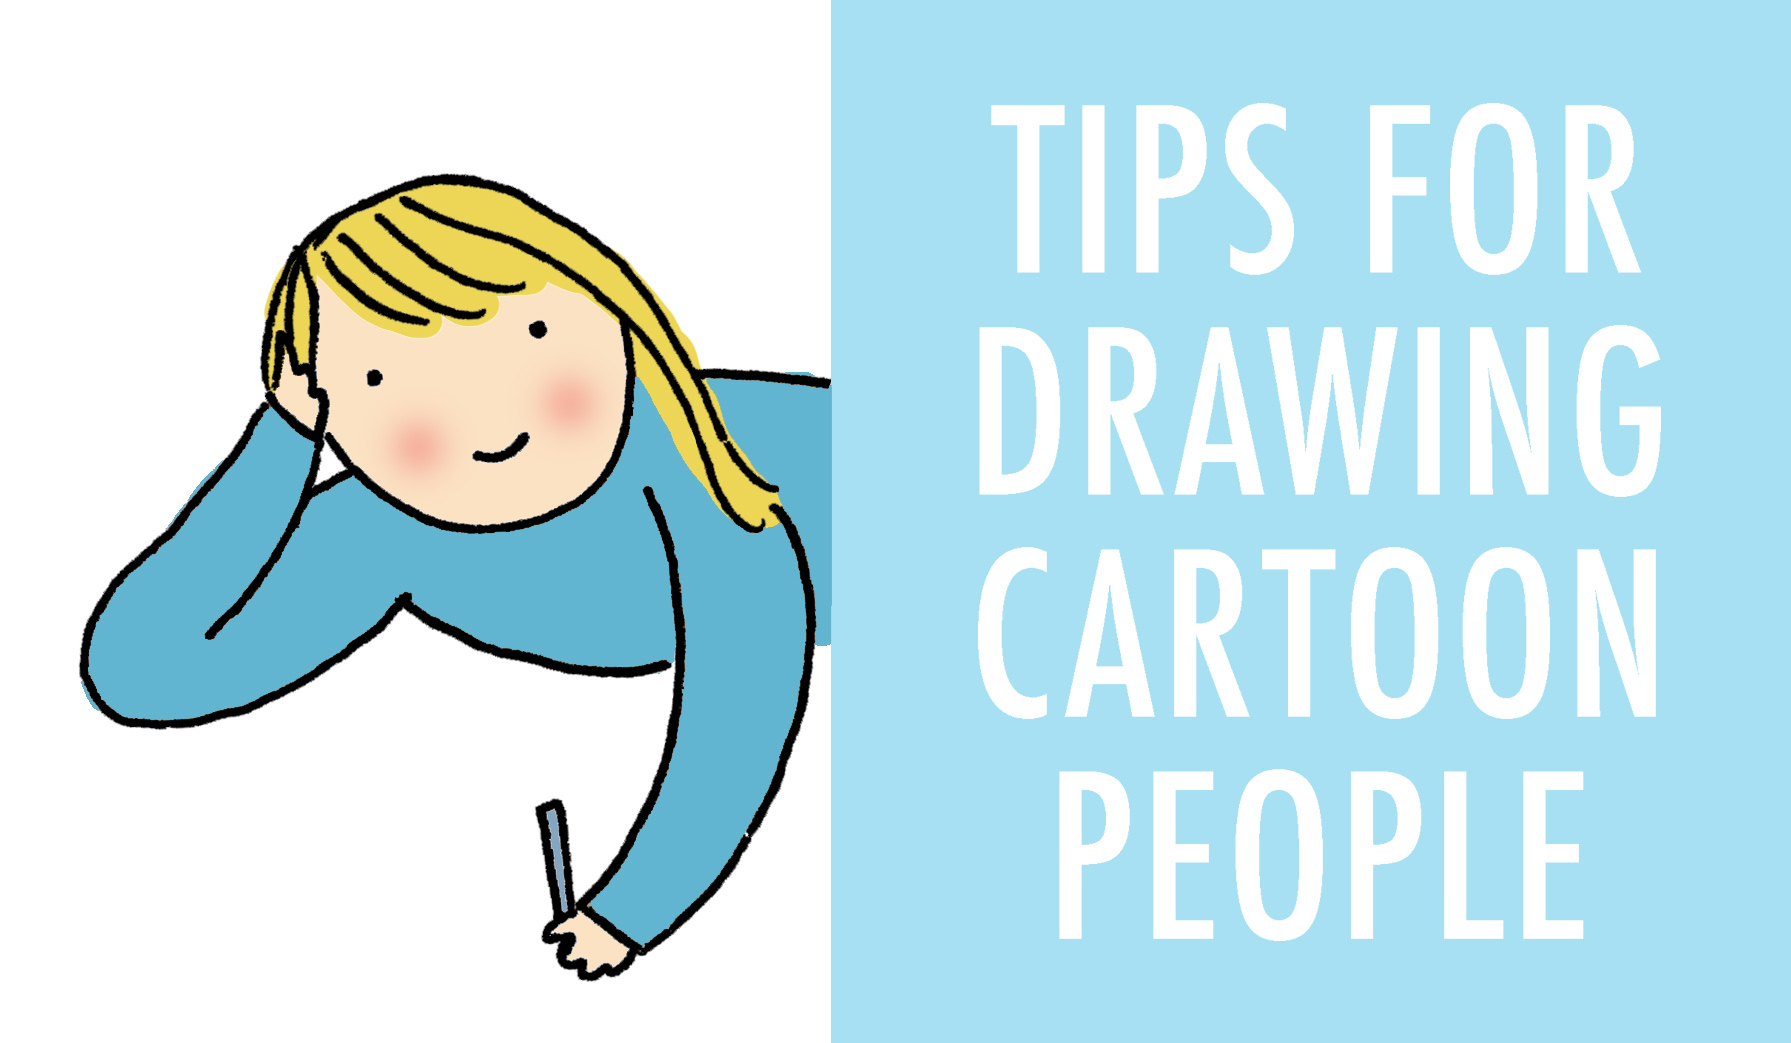 Tips for drawing cartoon people